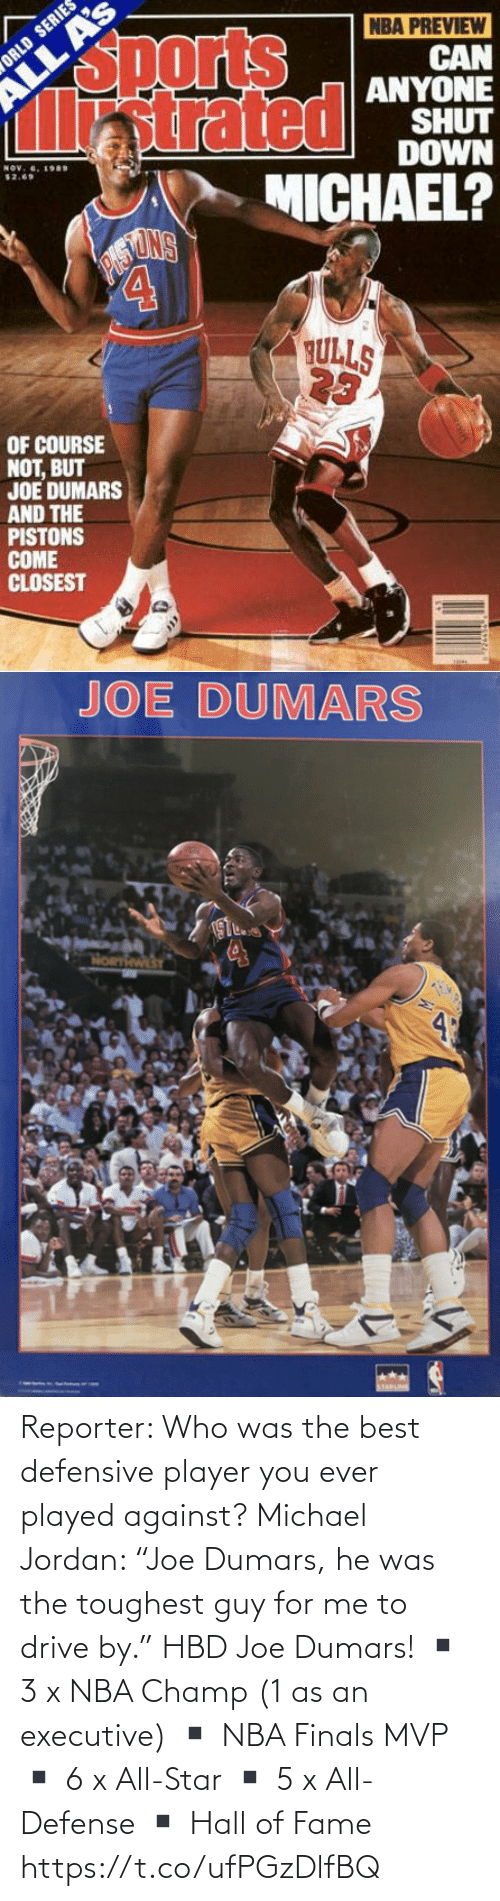 """Jordan: Reporter: Who was the best defensive player you ever played against?  Michael Jordan: """"Joe Dumars, he was the toughest guy for me to drive by.""""  HBD Joe Dumars!  ▪️ 3 x NBA Champ (1 as an executive) ▪️ NBA Finals MVP ▪️ 6 x All-Star ▪️ 5 x All-Defense ▪️ Hall of Fame https://t.co/ufPGzDlfBQ"""